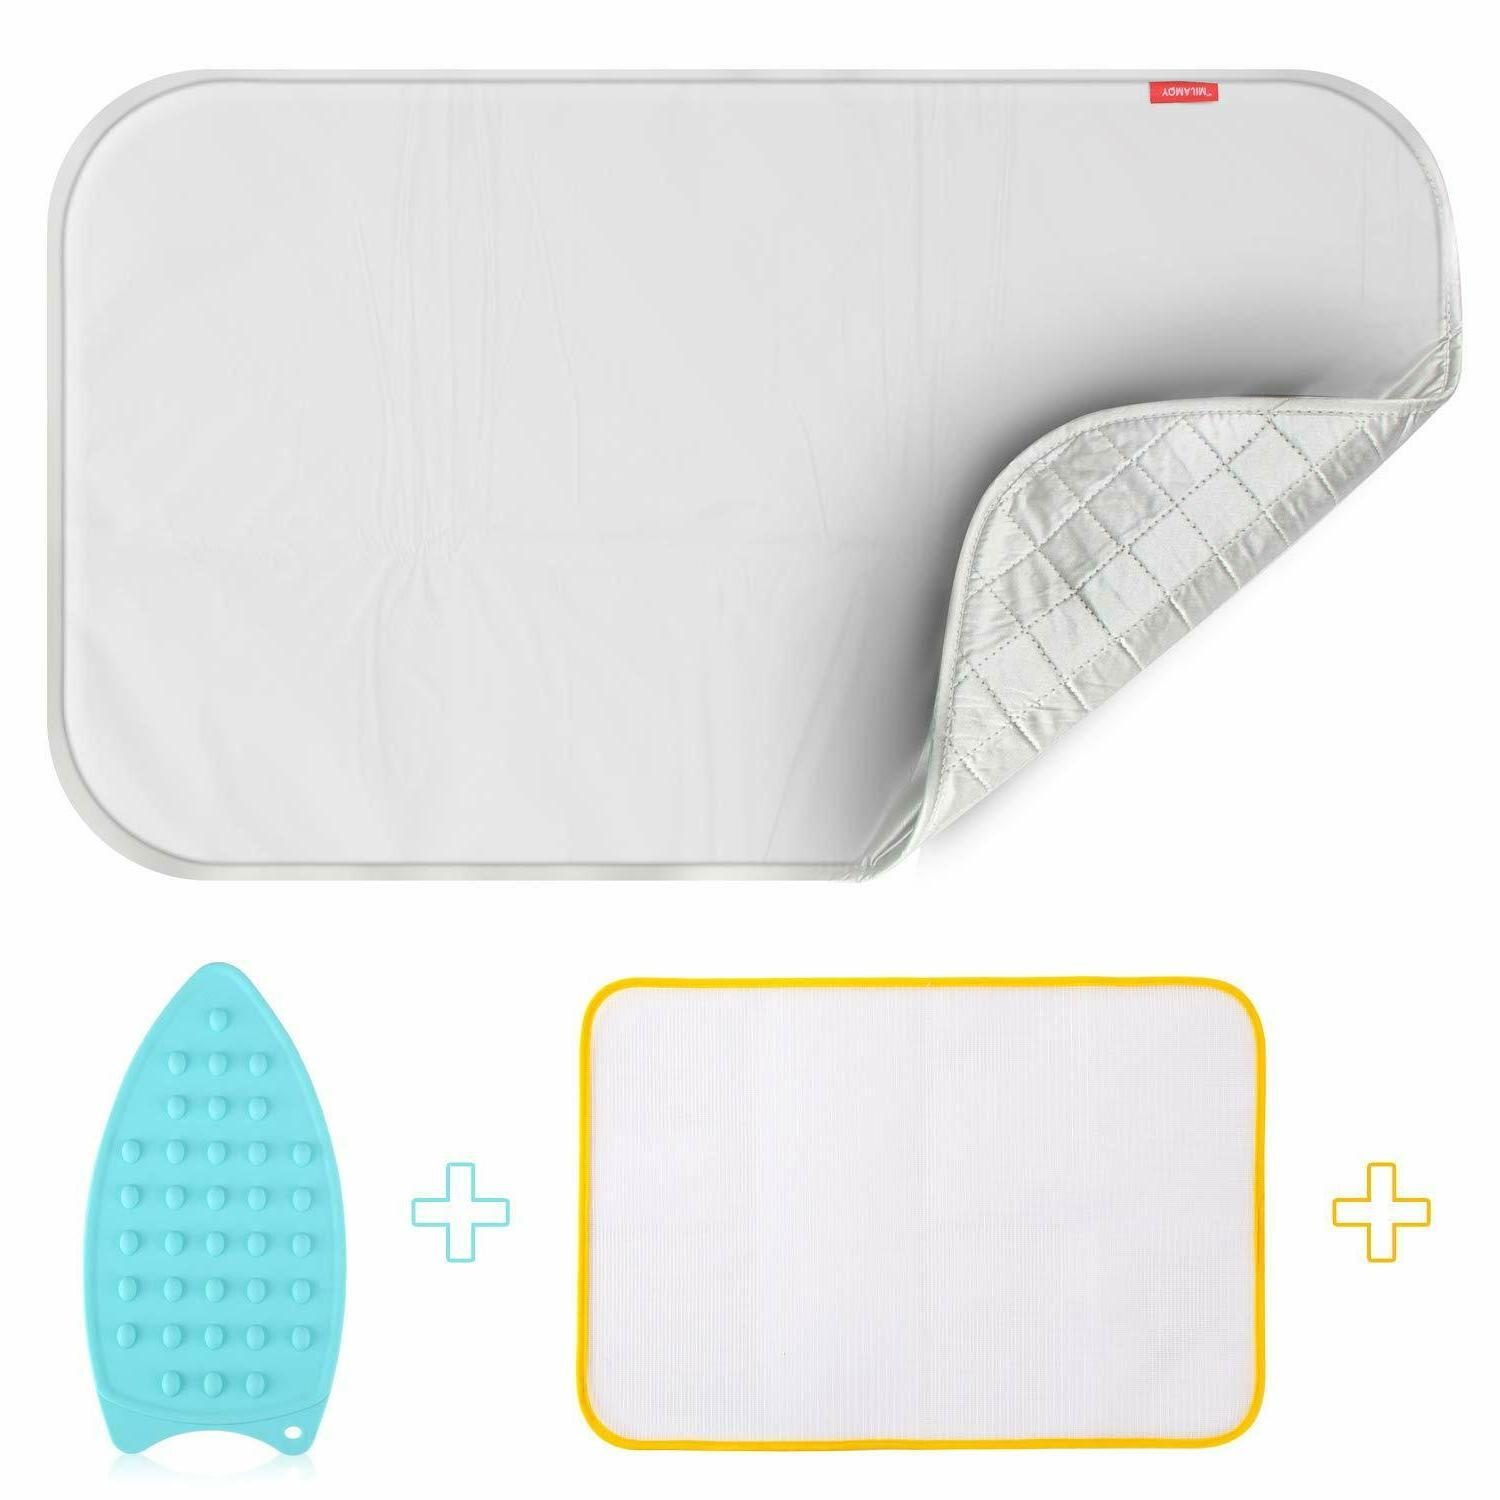 Ironing Board Cover W/Pad Inside Fit All Standard Scorch Res